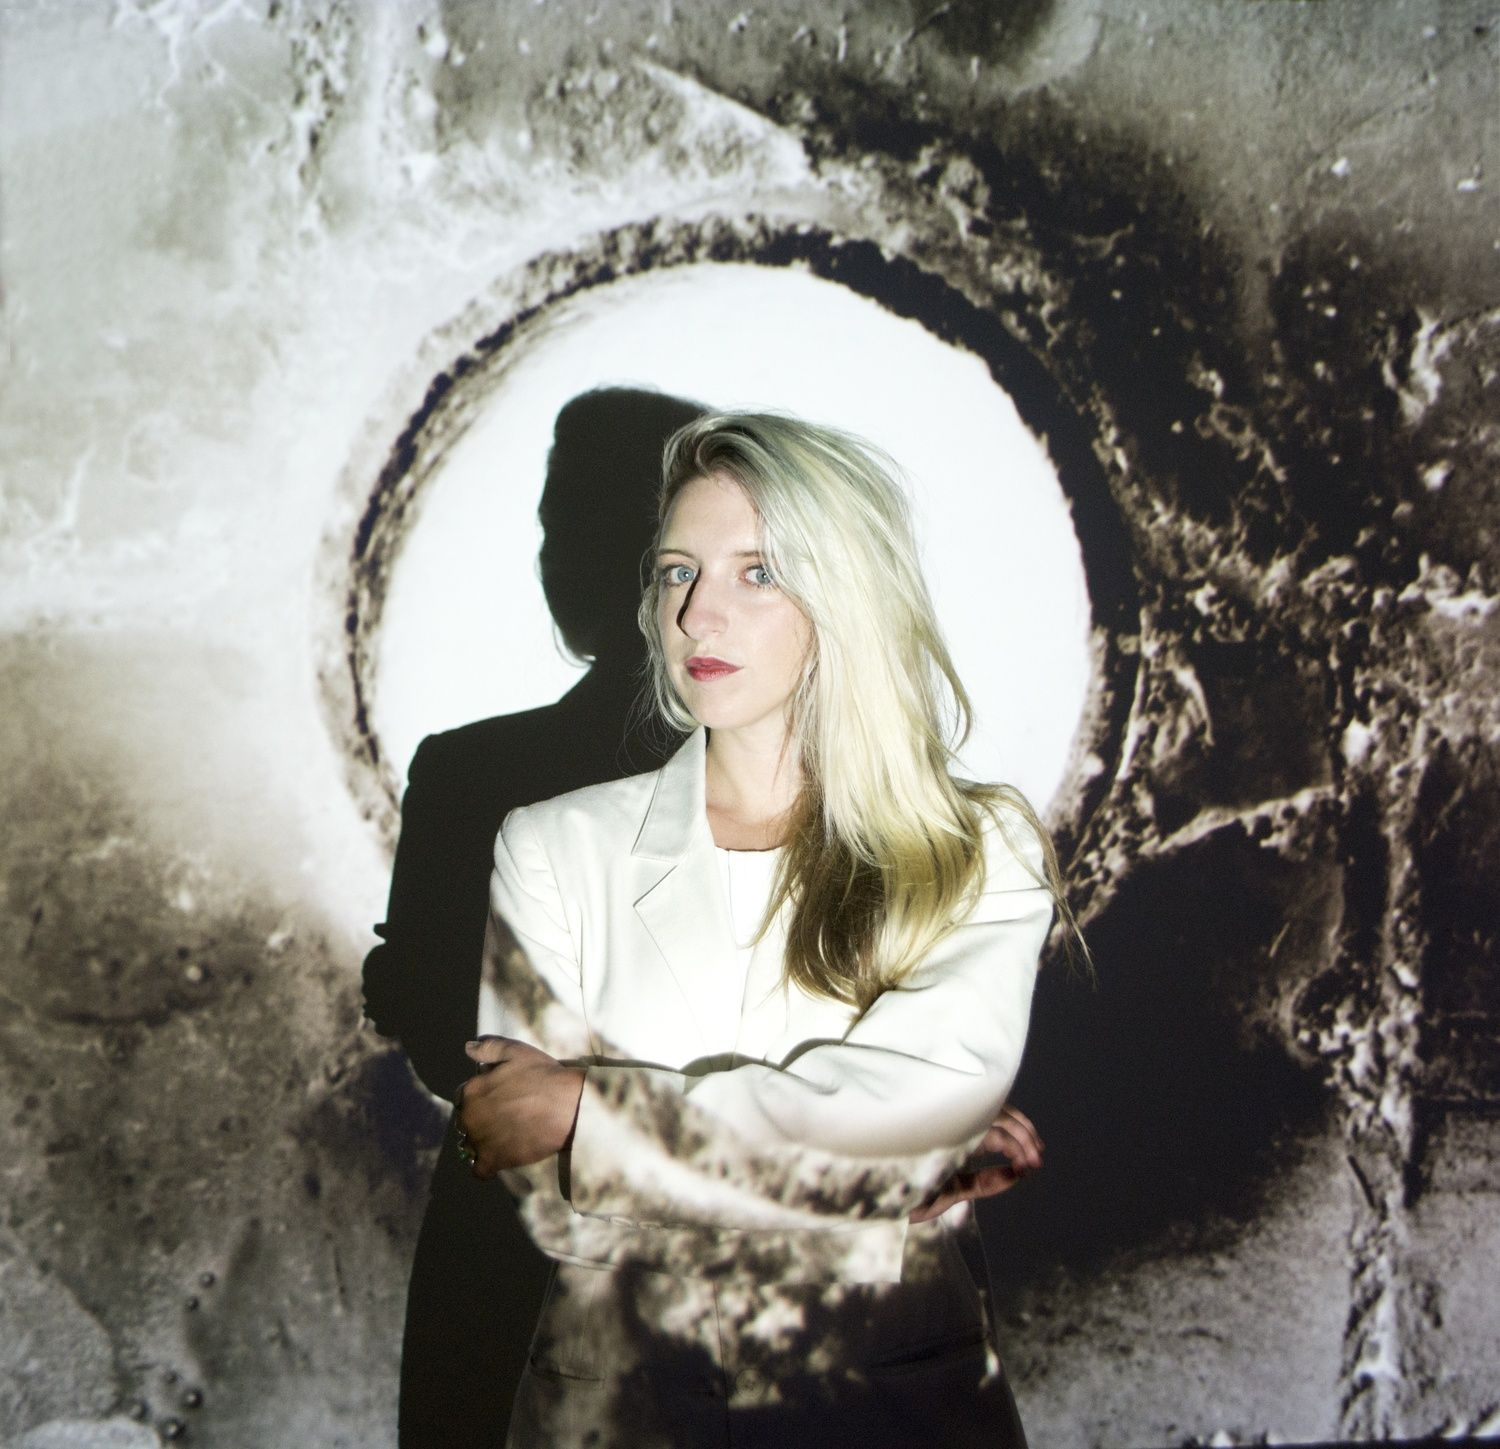 White Hinterland's latest album, 'Baby,' is out now via Dead Oceans. (Anna Rotty/Courtesy of the artist)